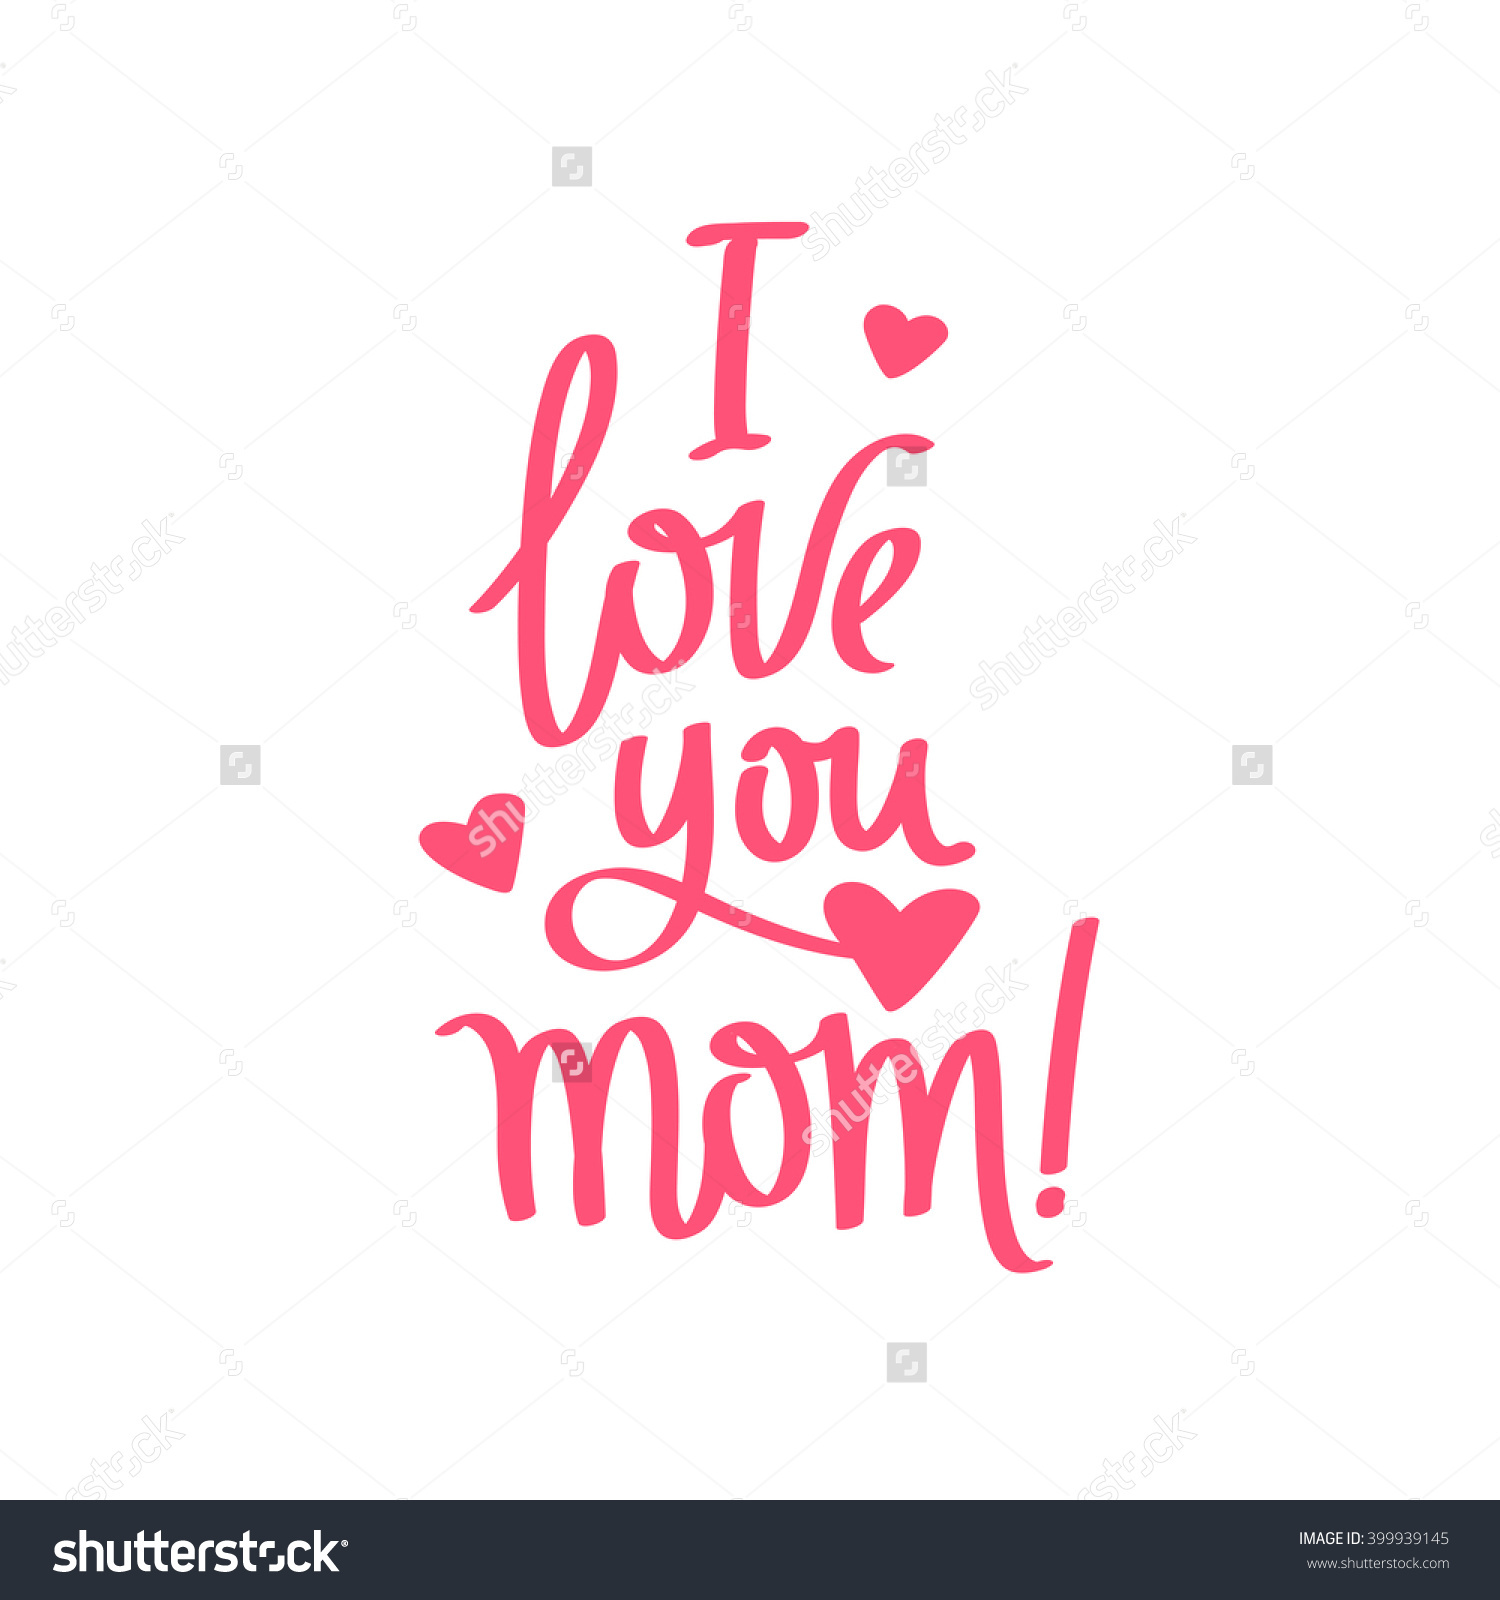 Download I Love You Mom Wallpapers Gallery 1500x1600